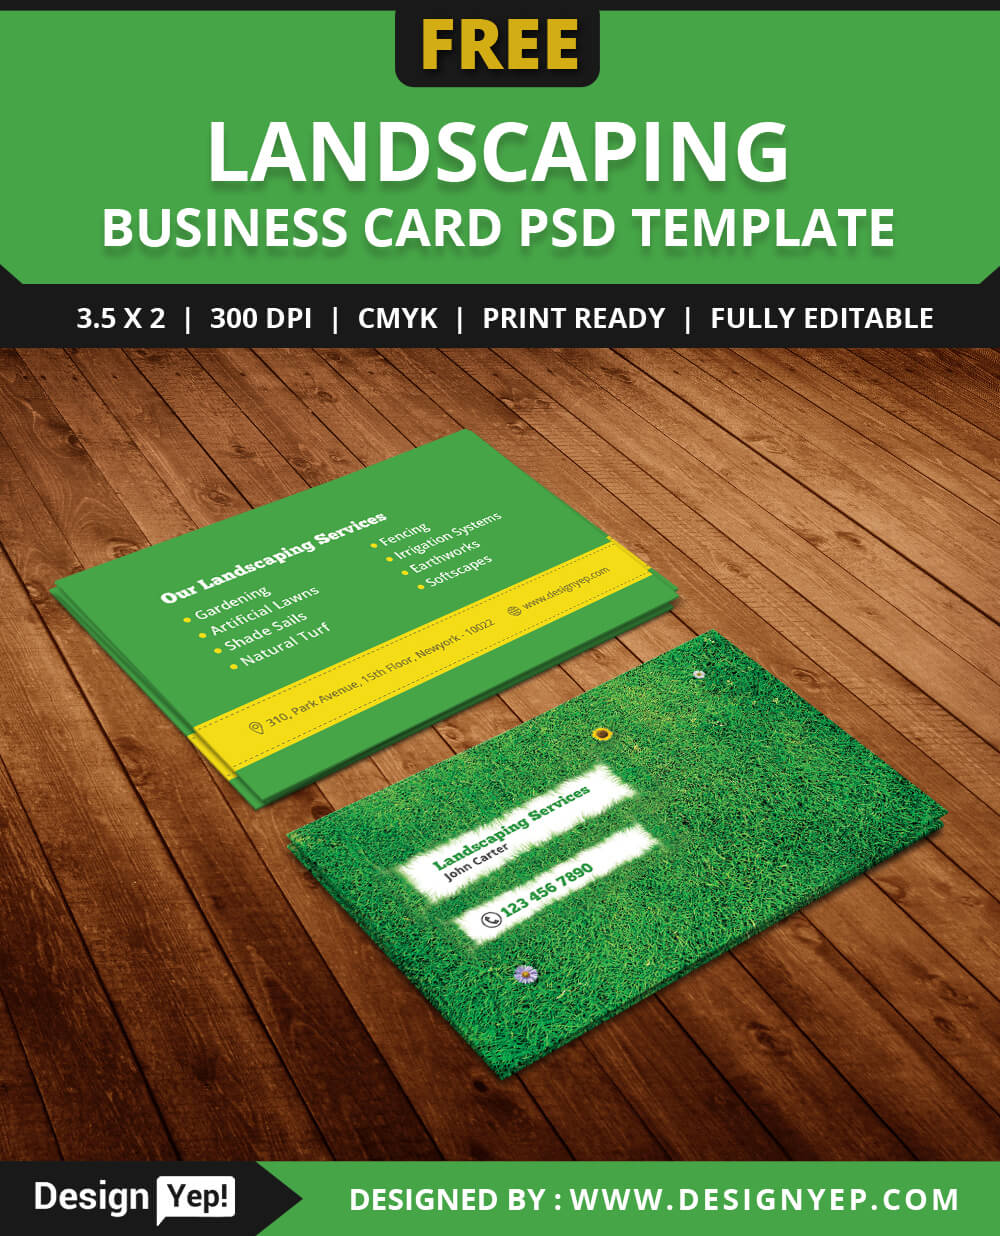 41 Landscaping Business, 25 Best Ideas About Lawn Care pertaining to Lawn Care Business Cards Templates Free